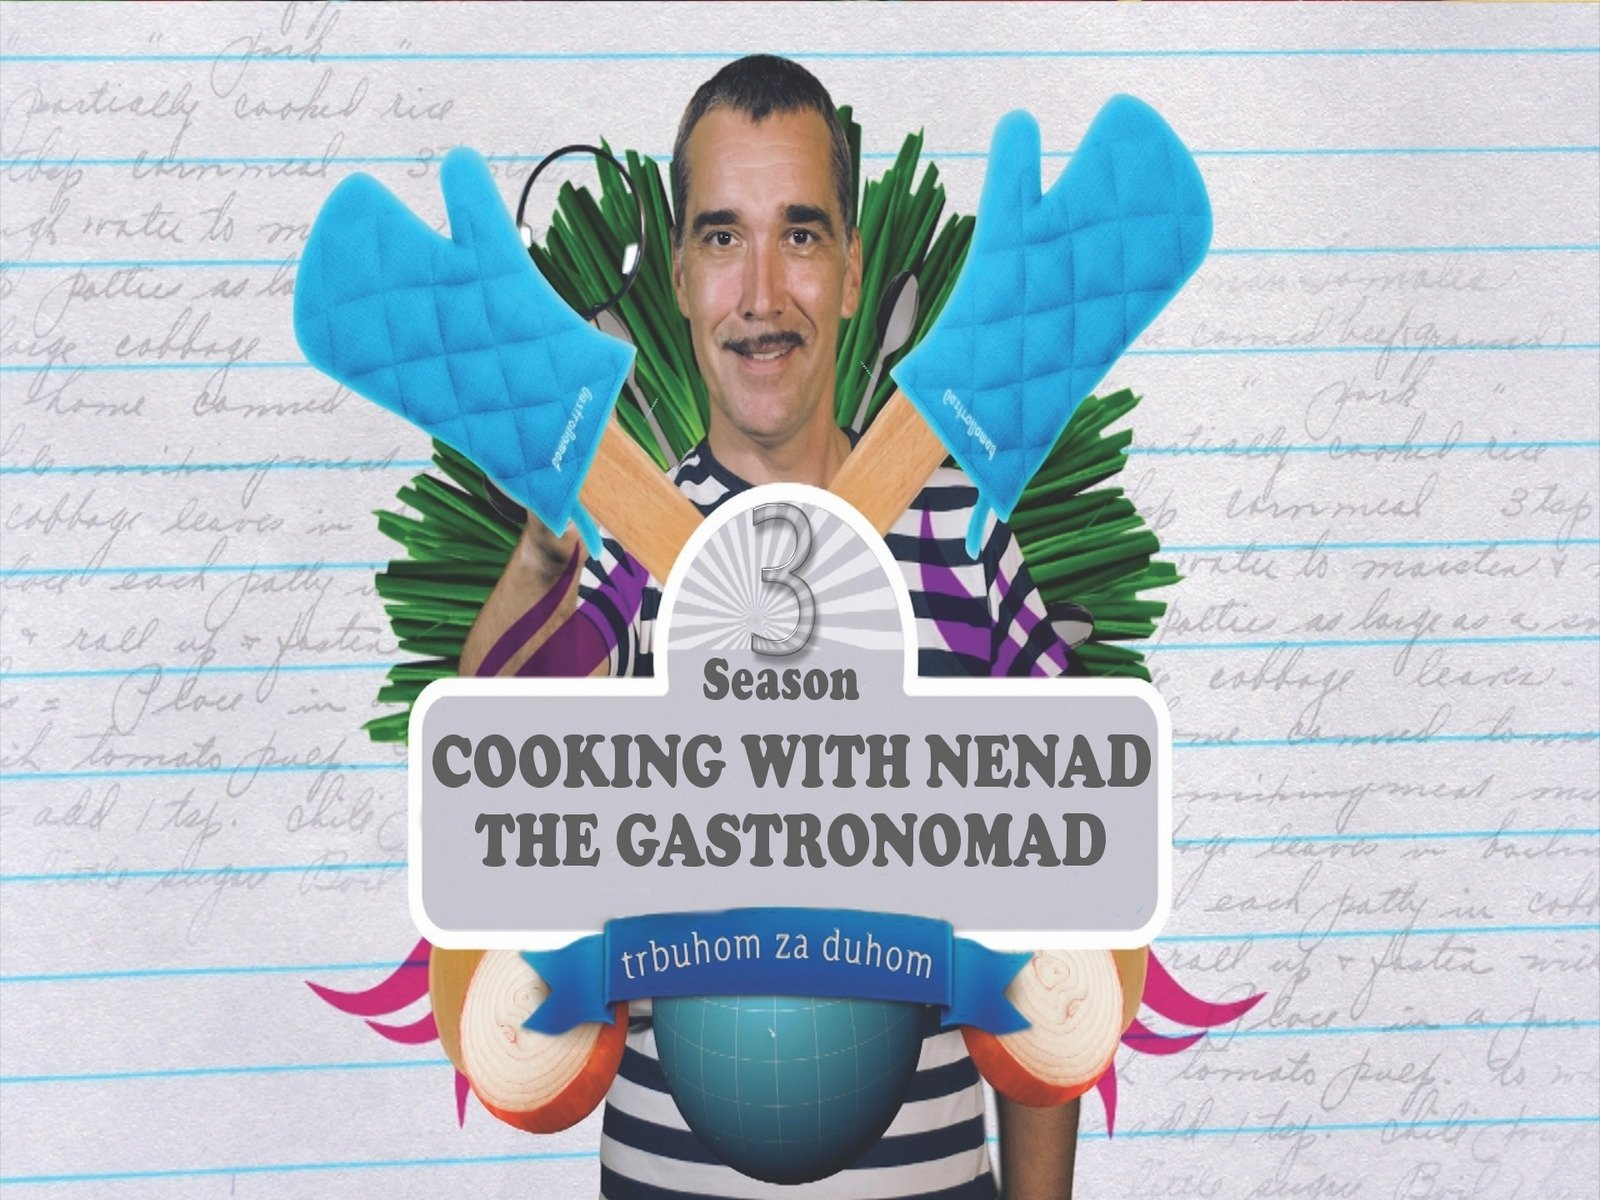 Cooking with Nenad the Gastronomad - Season 3